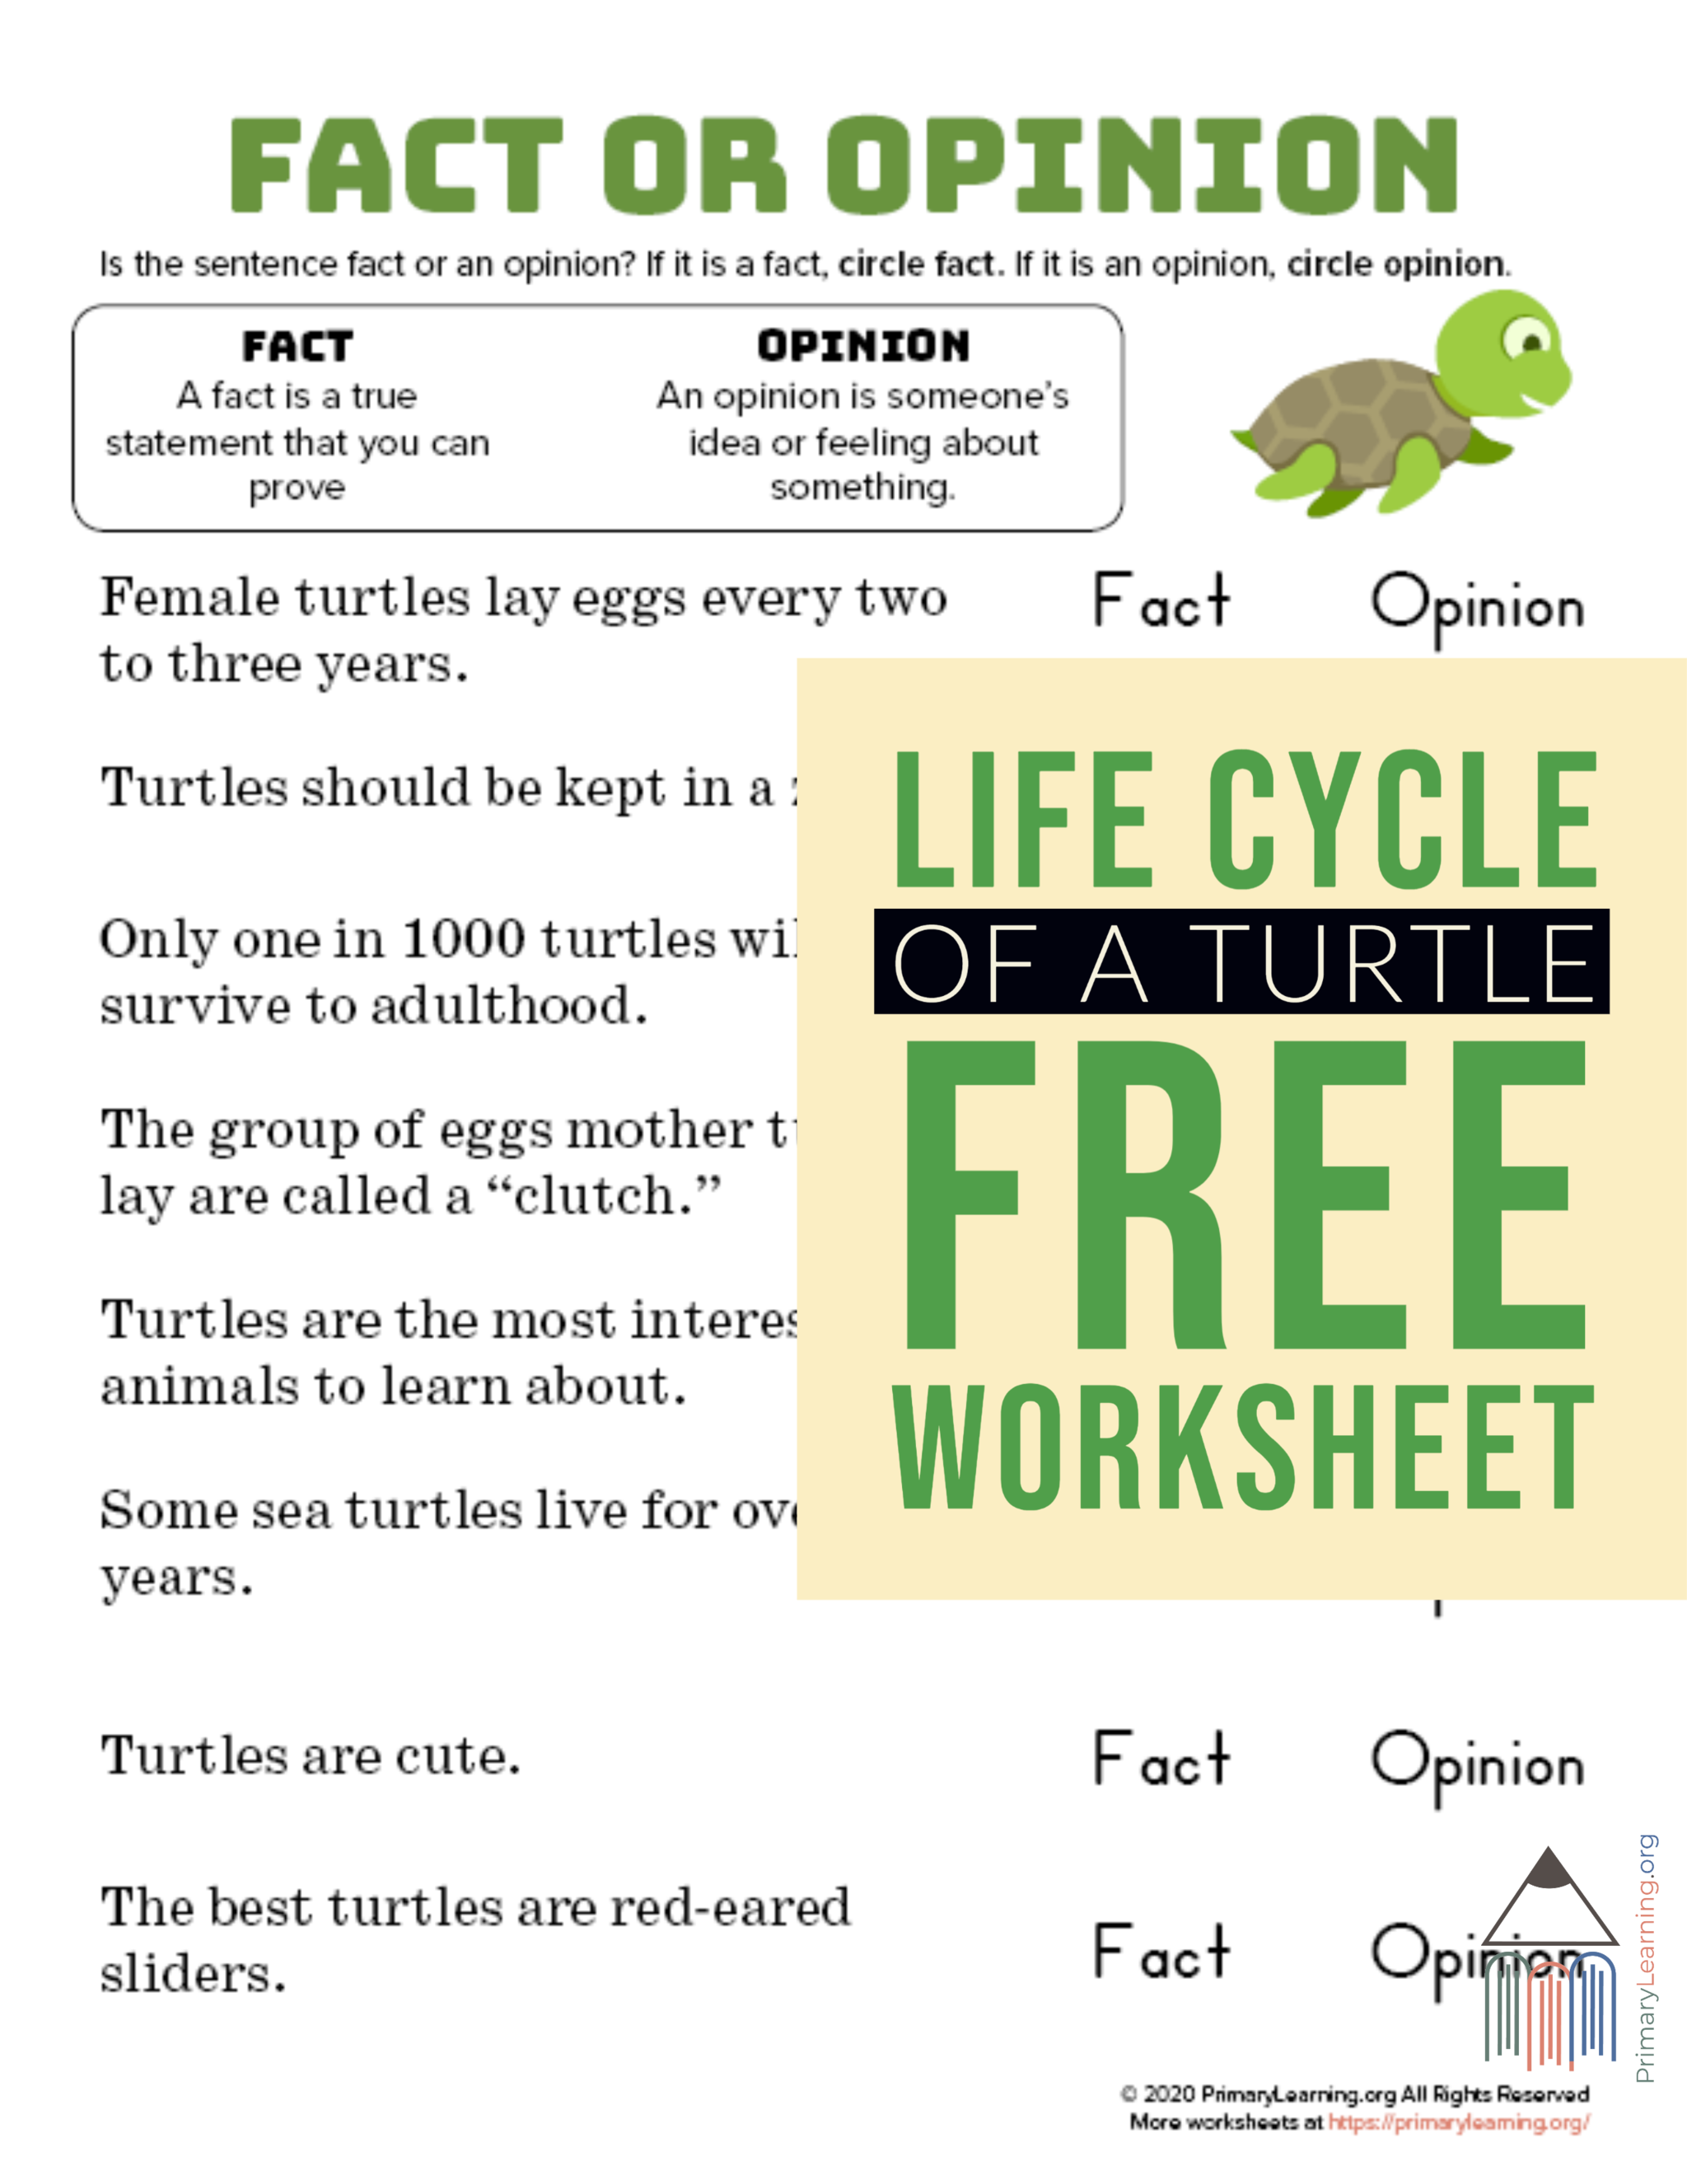 hight resolution of Turtle - Facts and Opinions   PrimaryLearning.org   Fact and opinion